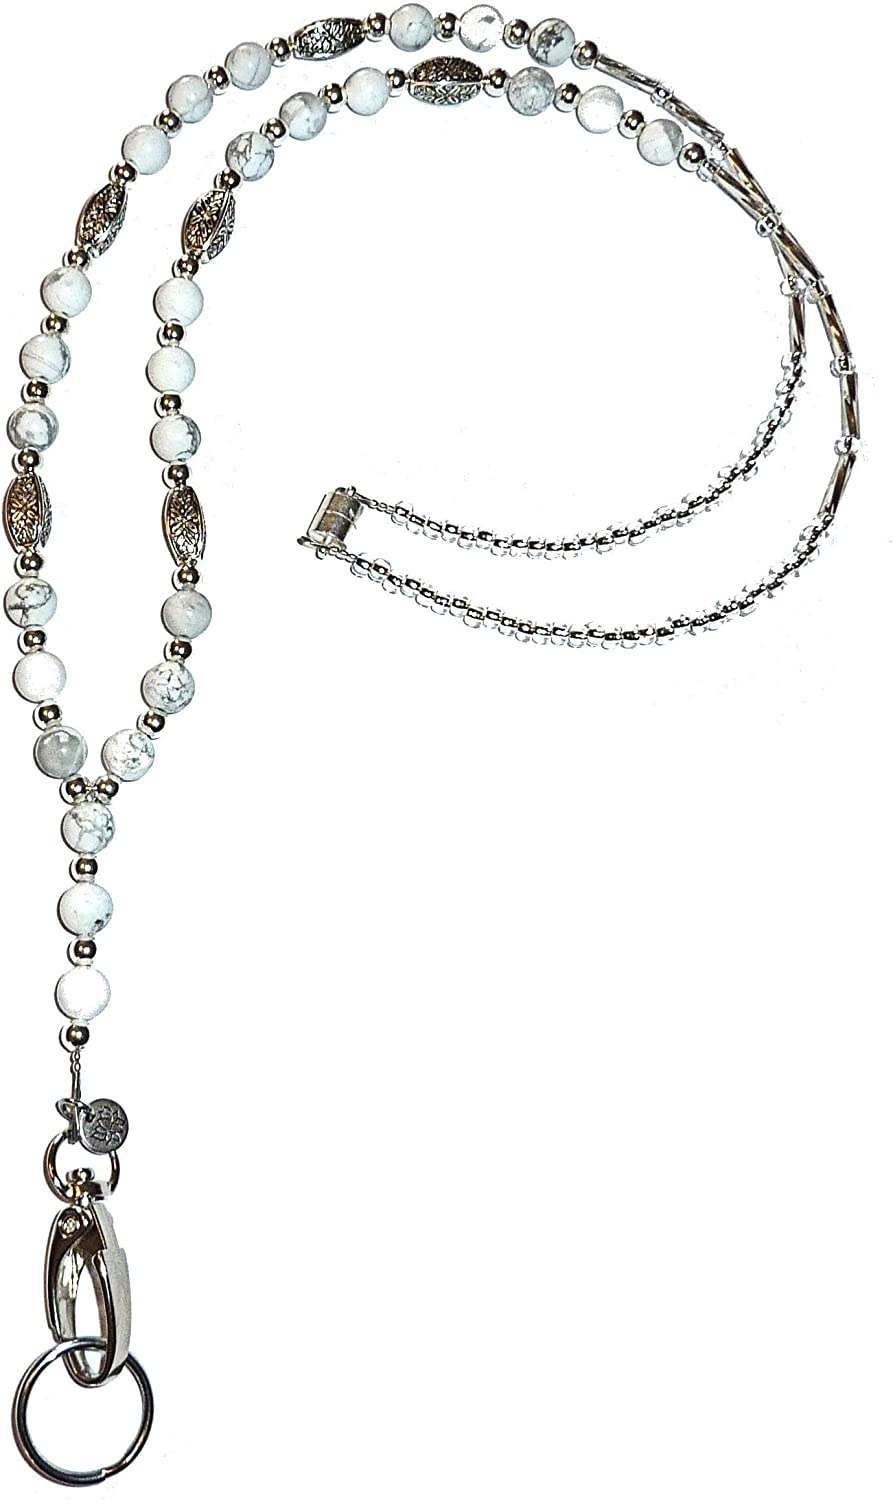 Max Price reduction 65% OFF Women's Natural Stone Howlite Made Fashion Lanyar Beaded In USA